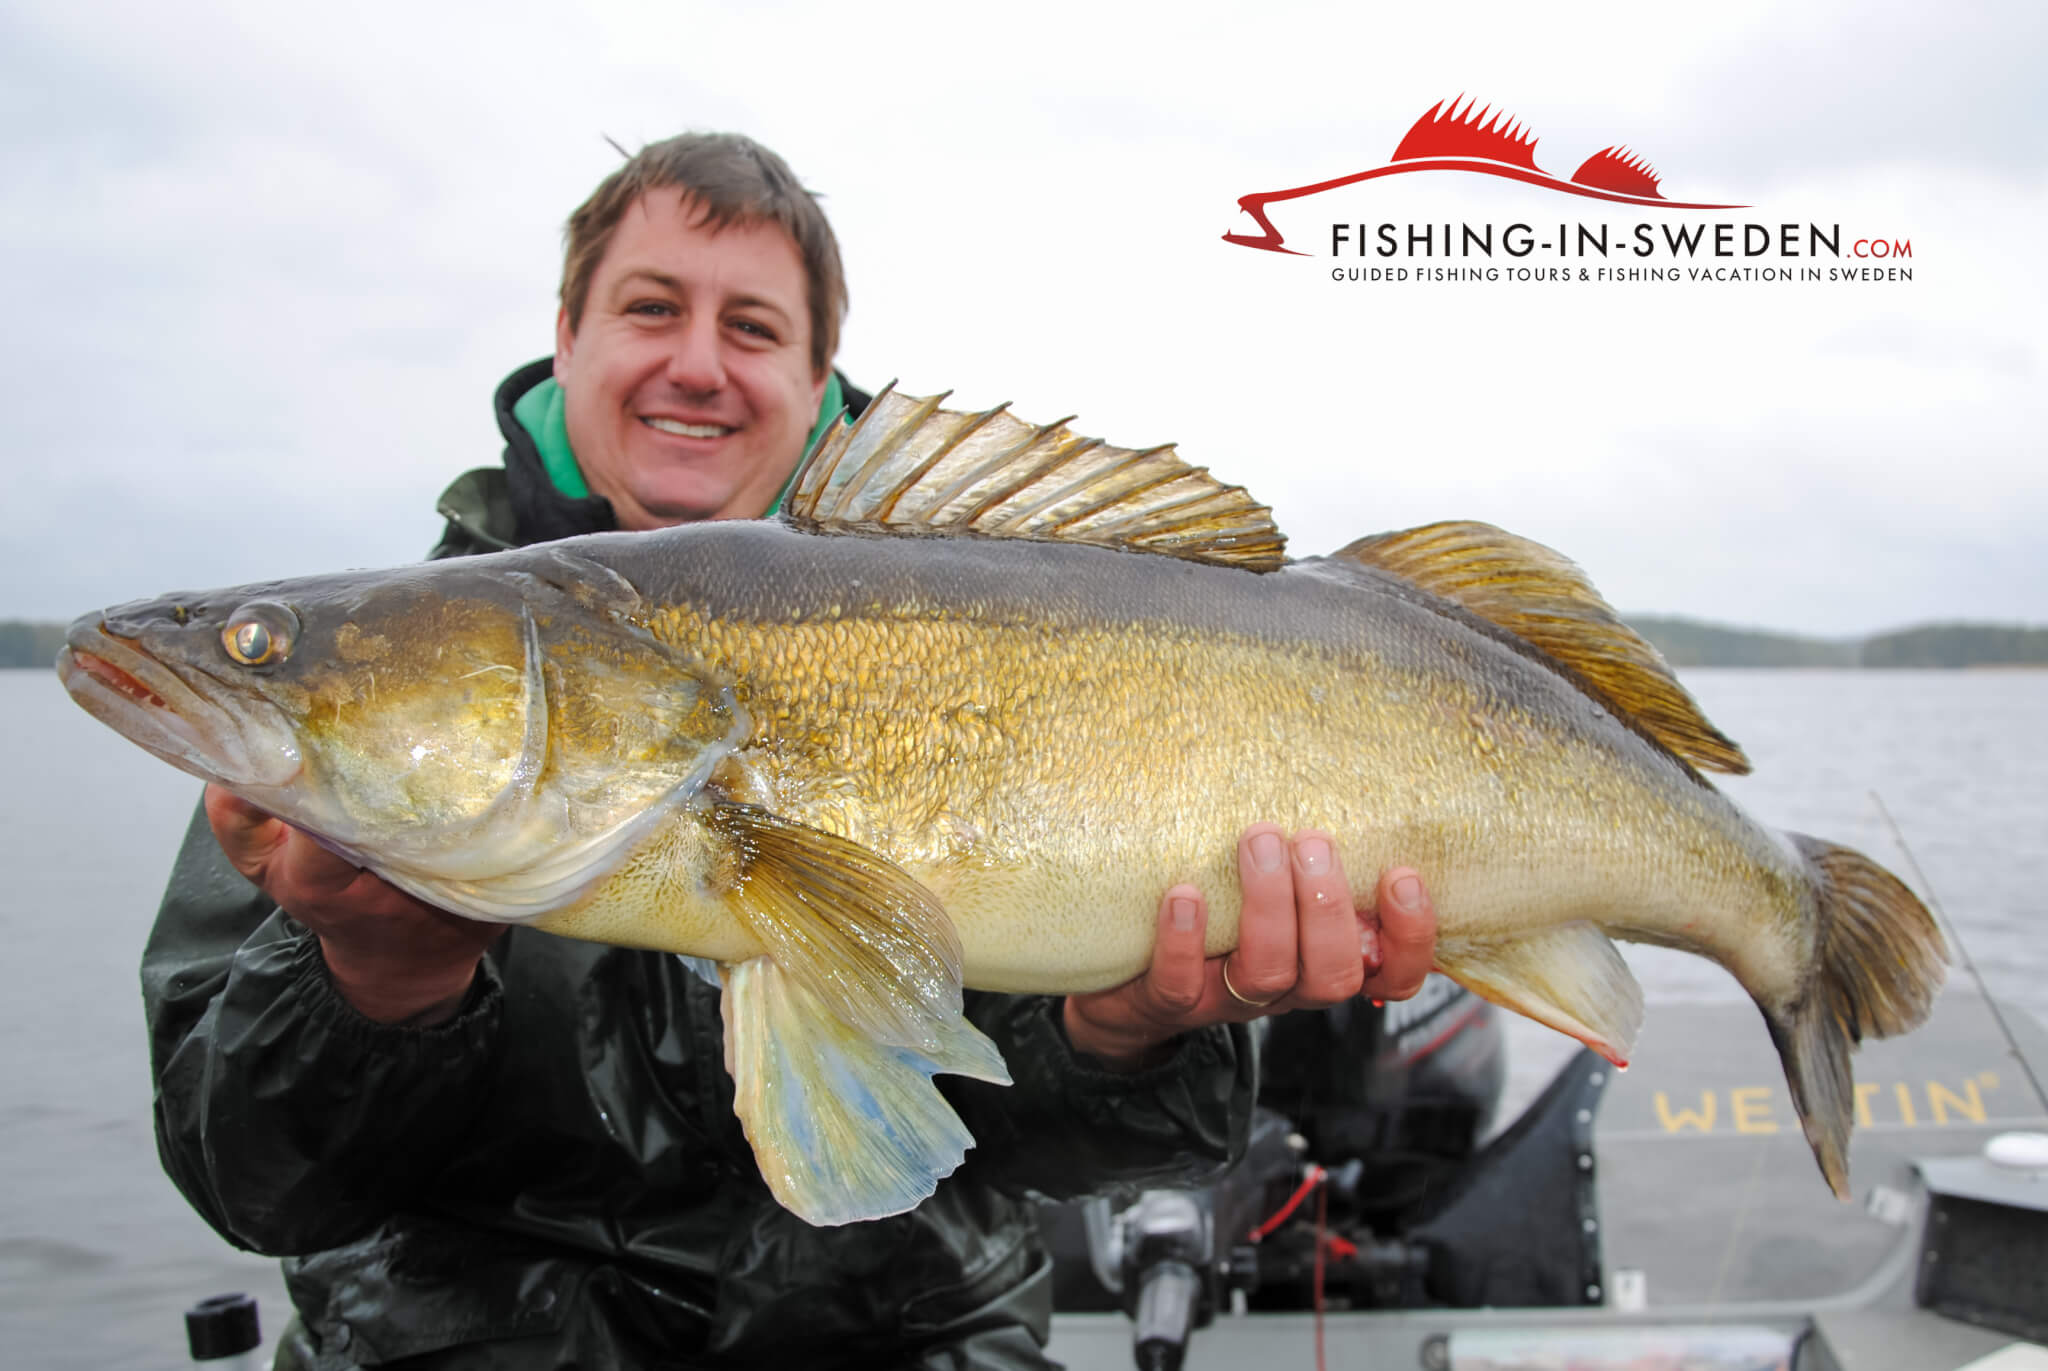 Ice Fishing in Sweden for Pike, Zander & Perch - Fishing-in